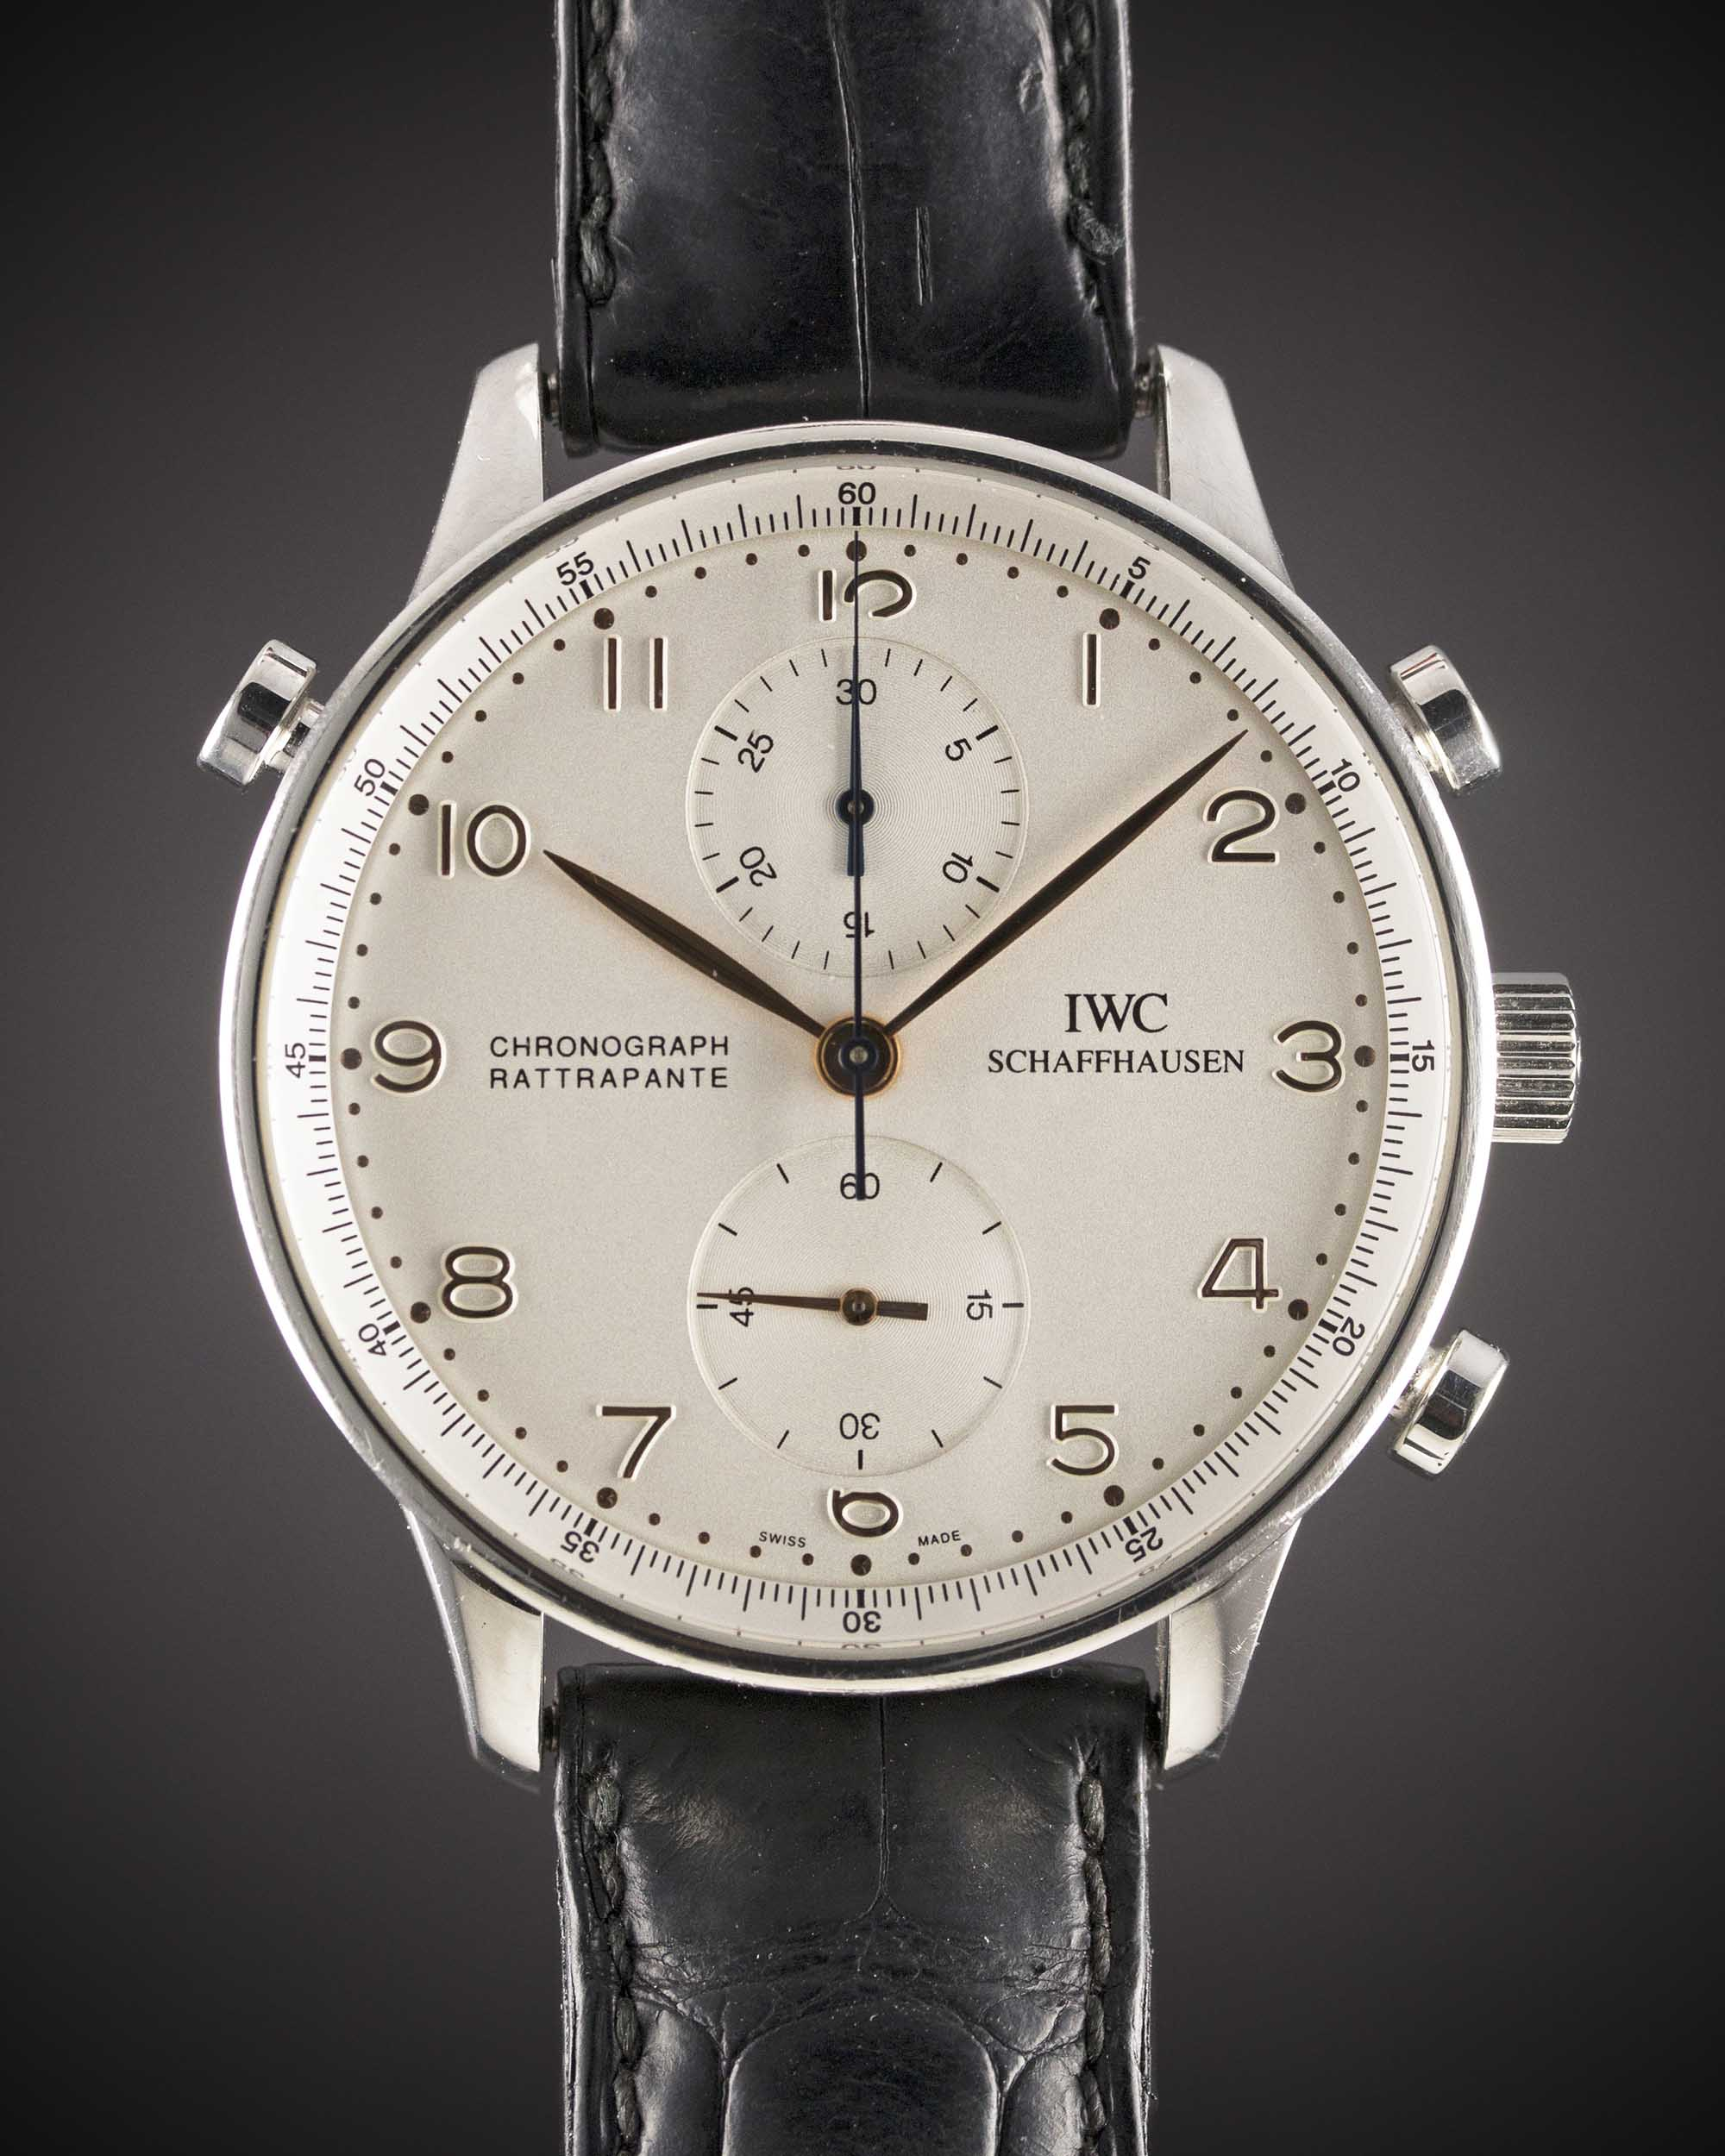 Lot 47 - A GENTLEMAN'S STAINLESS STEEL IWC PORTUGUESE RATTRAPANTE CHRONOGRAPH WRIST WATCH CIRCA 2000s, REF.